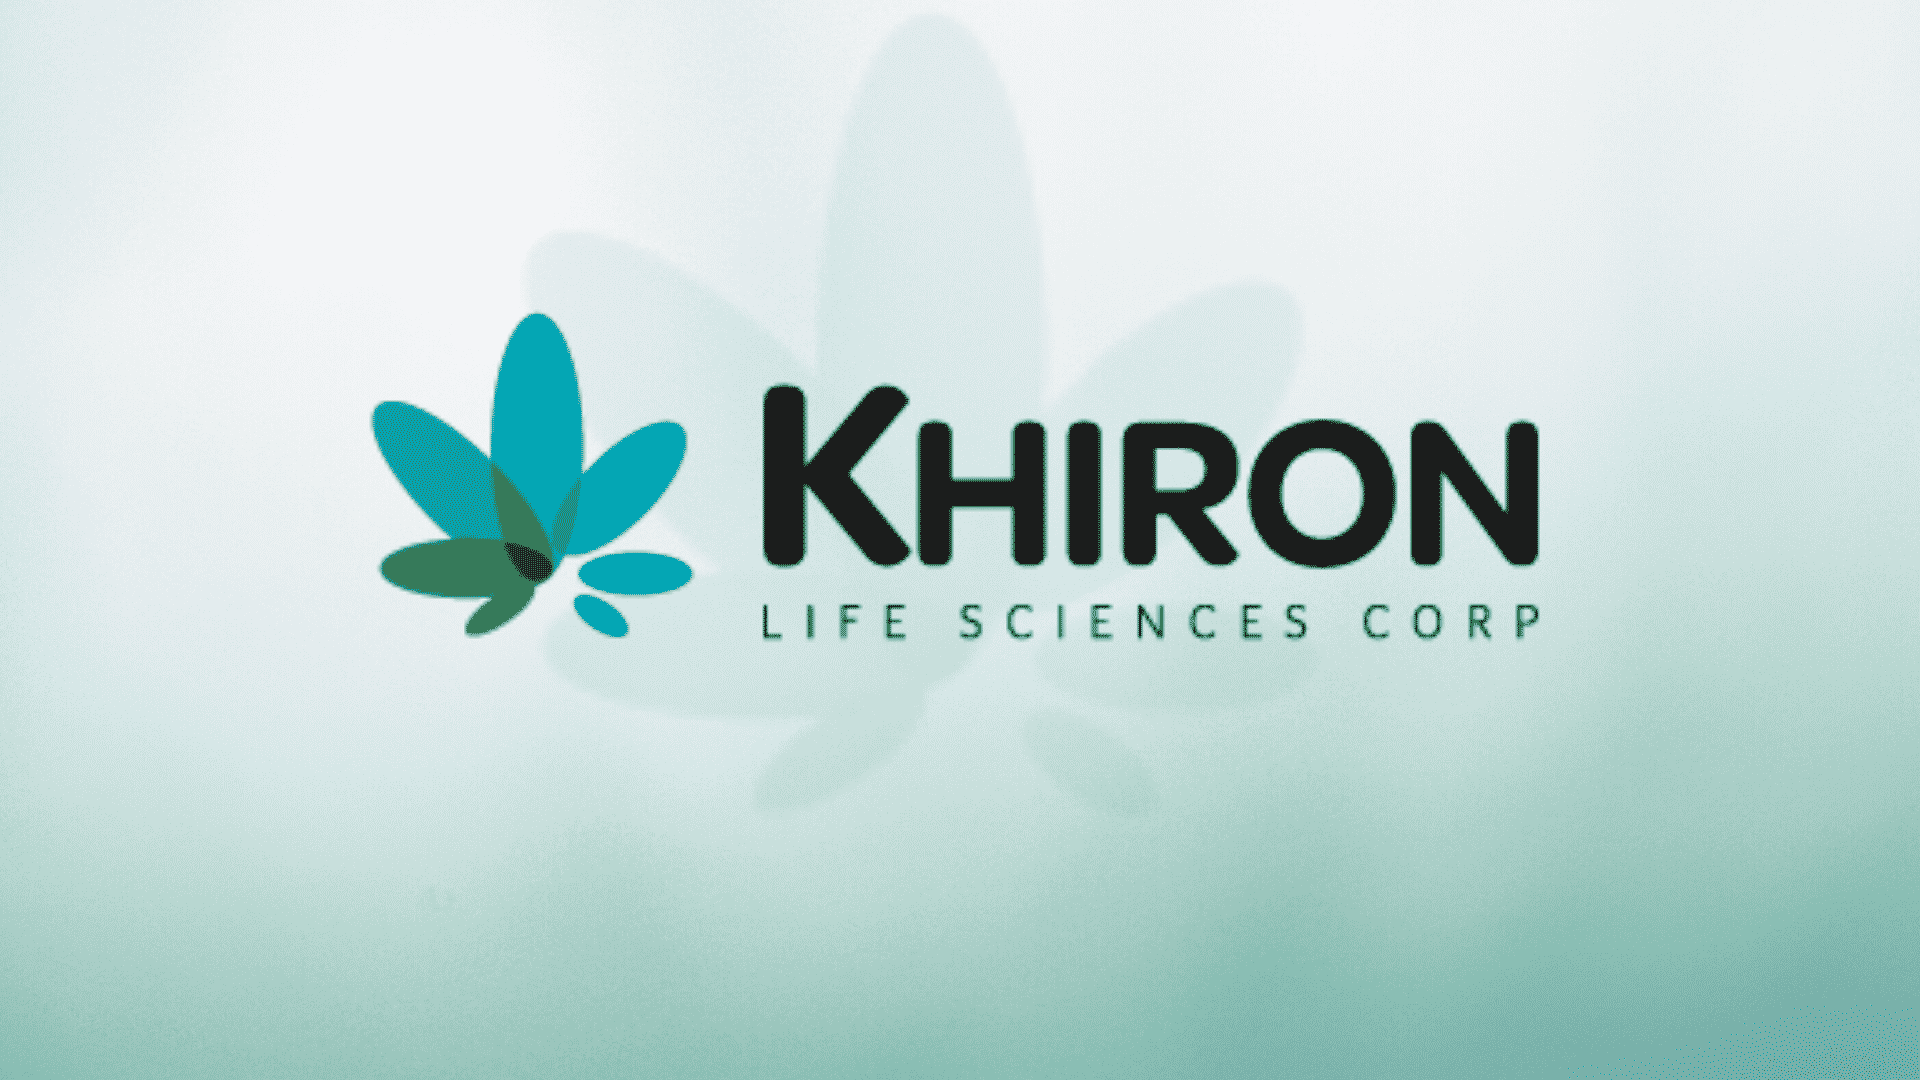 Khiron is the First to Be Authorized by Colombian Authority to Commercialize Cannabis